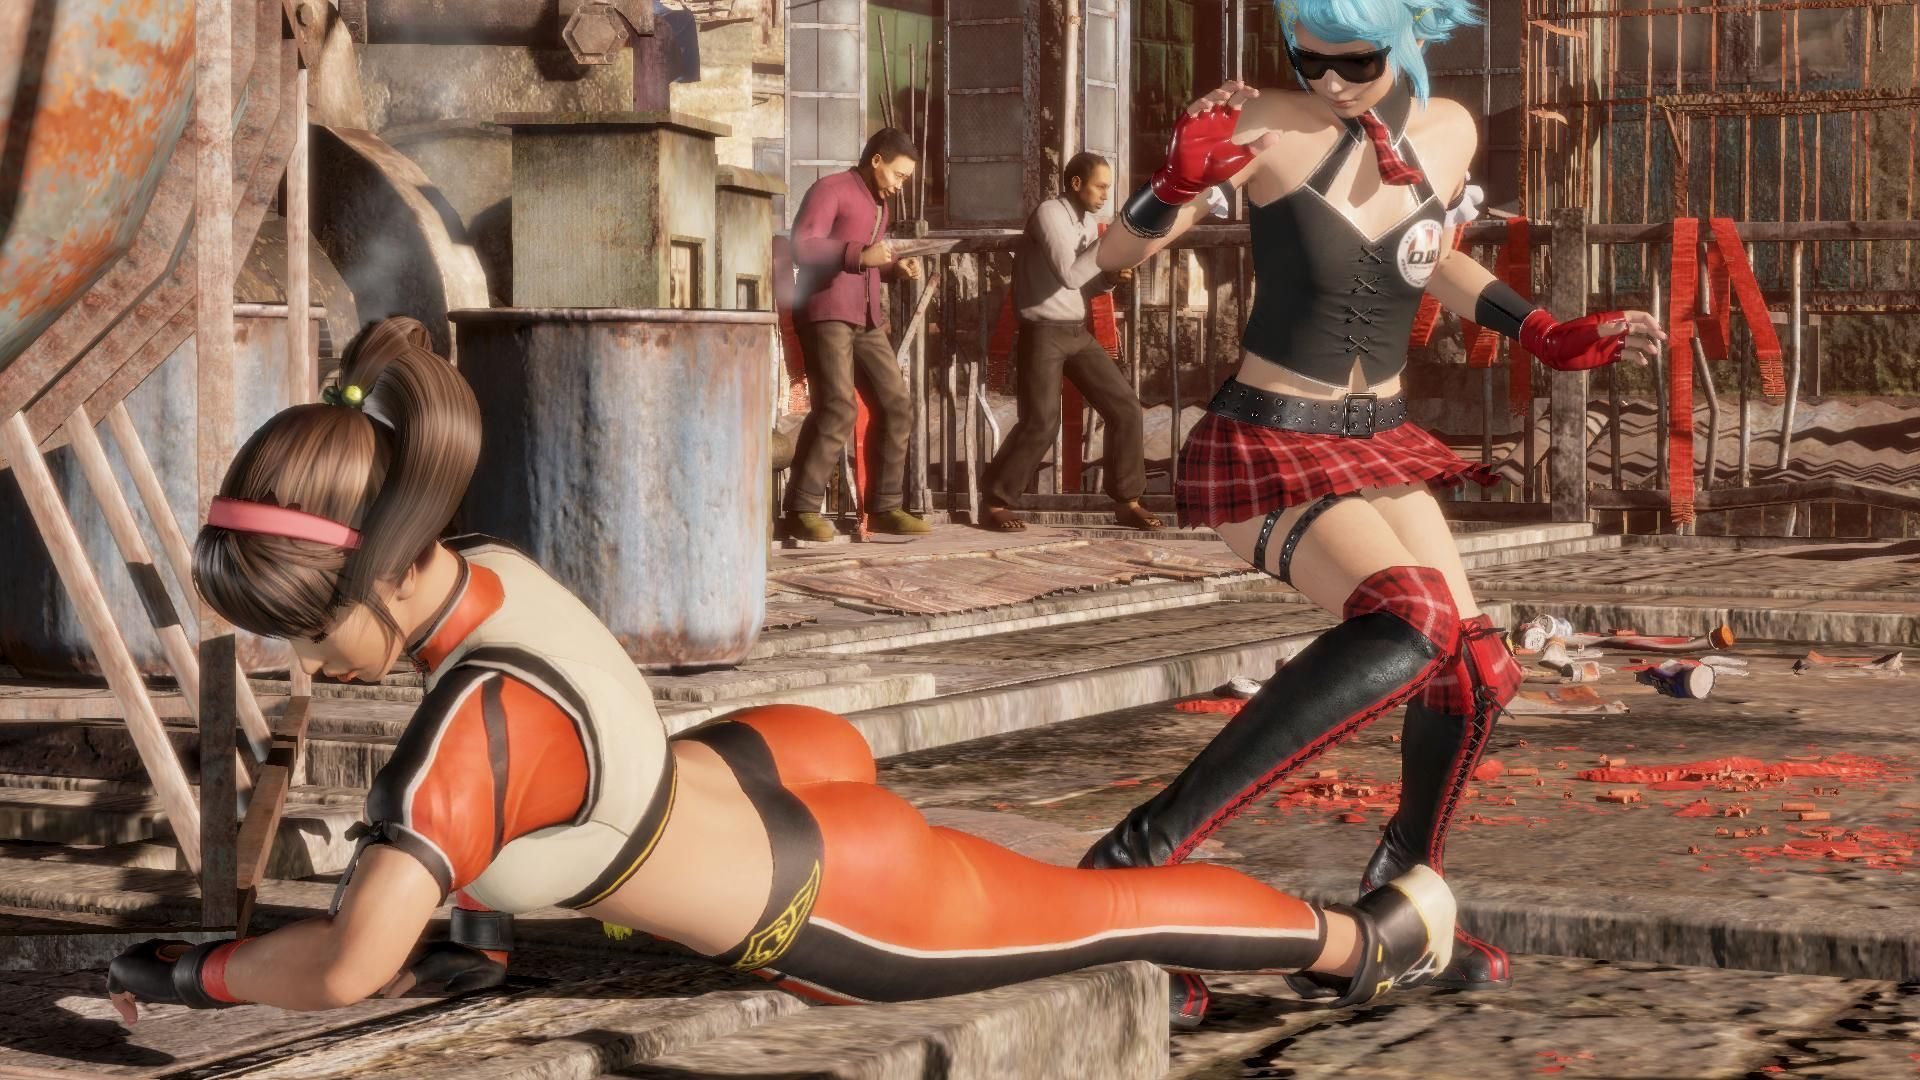 More Leifang - Dead or Alive 6